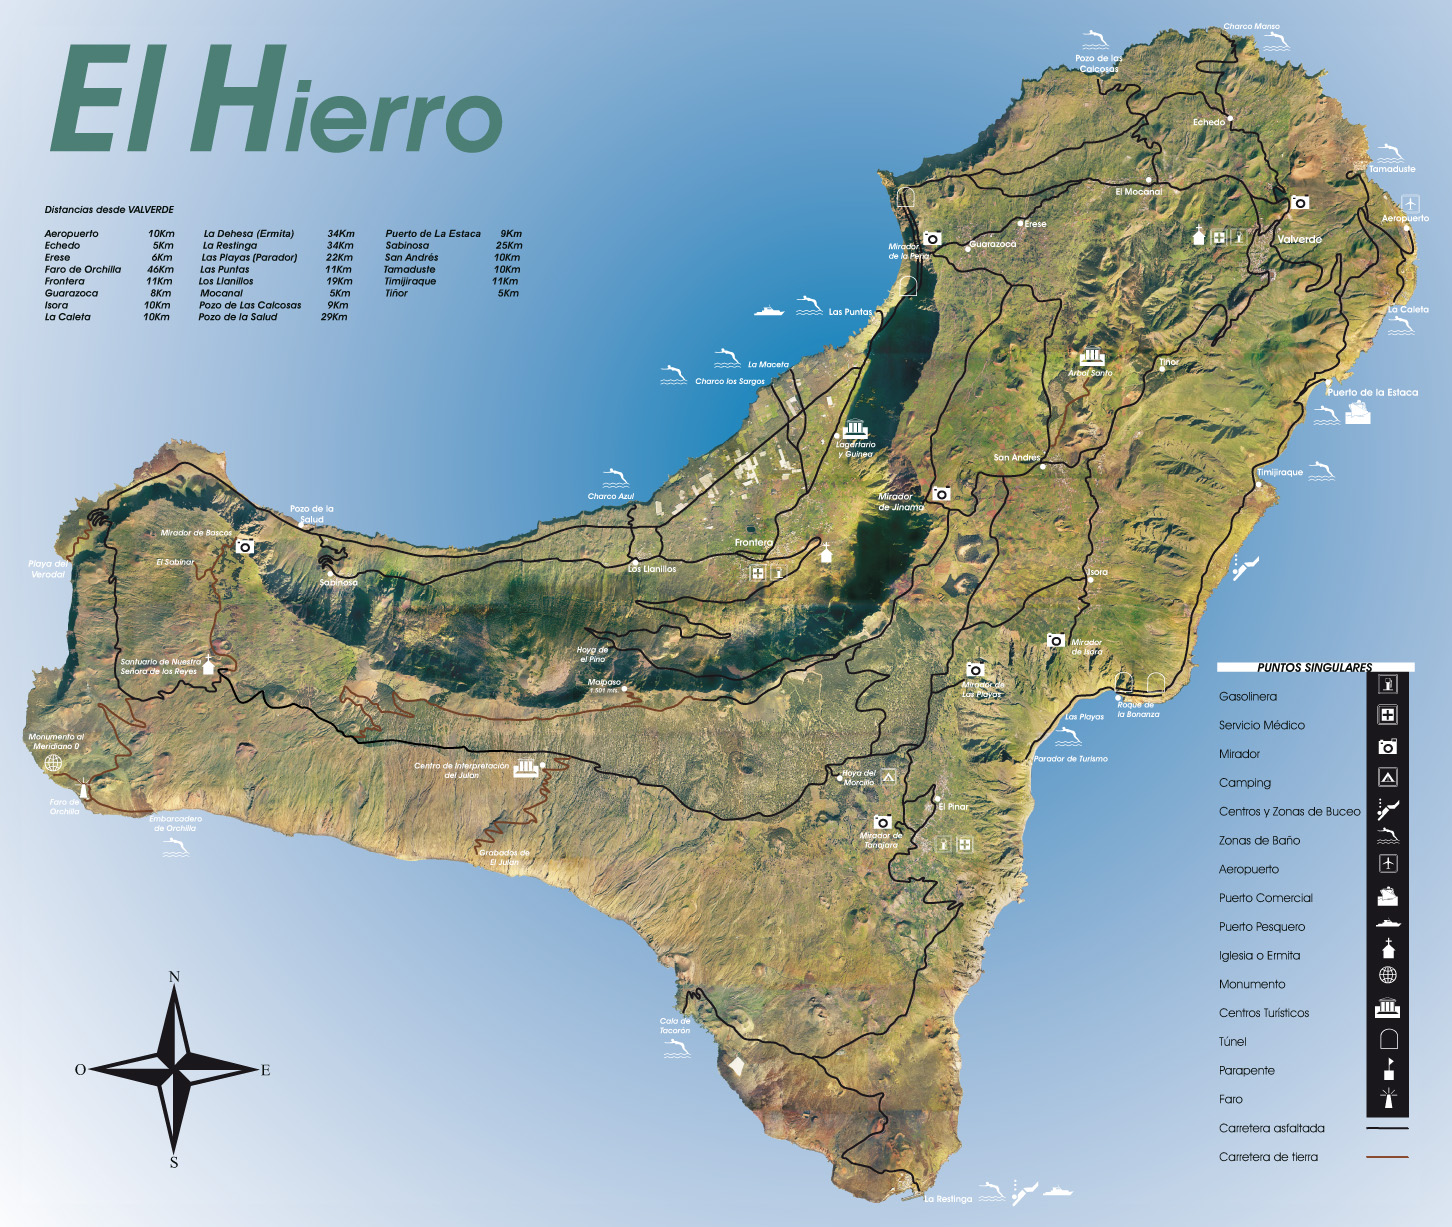 El Hierro Island physical-touristic map